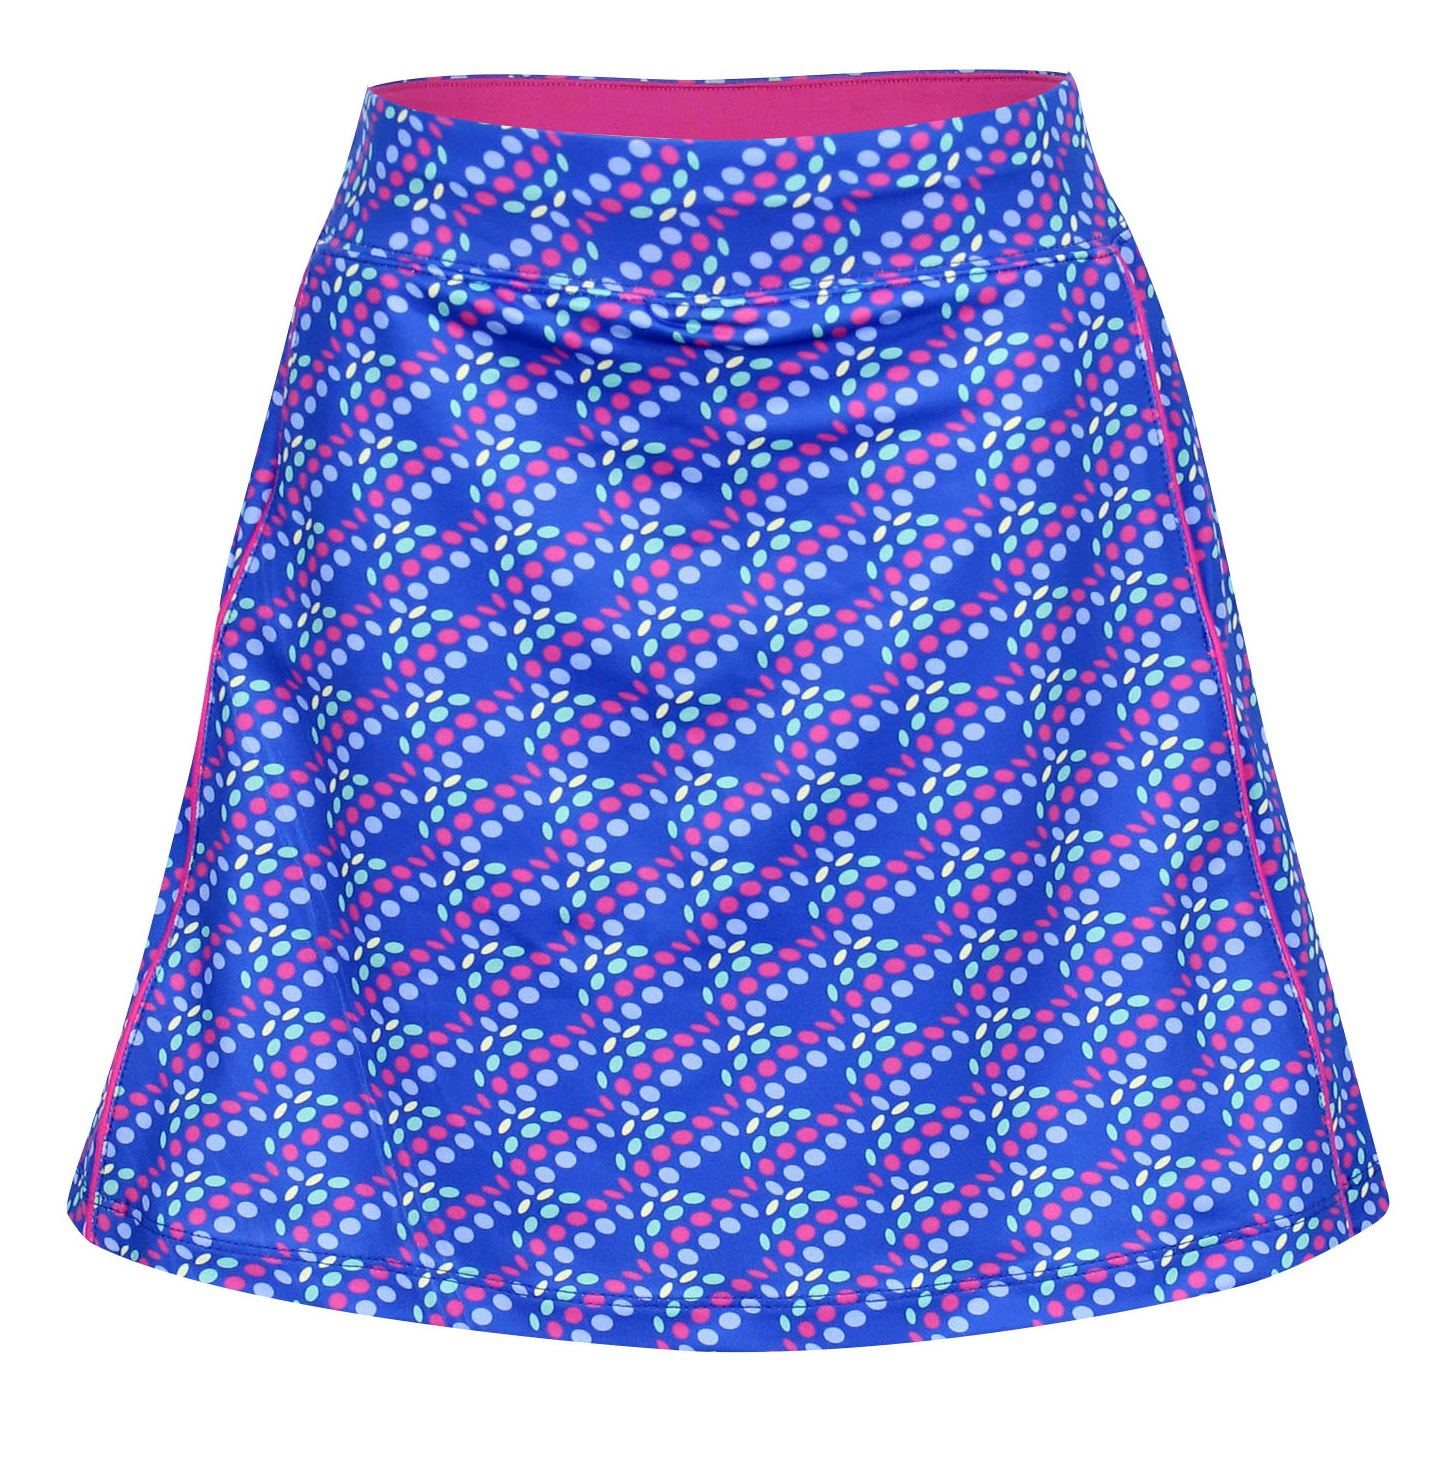 Tara Knit Pull On Skort in Dots In One Print